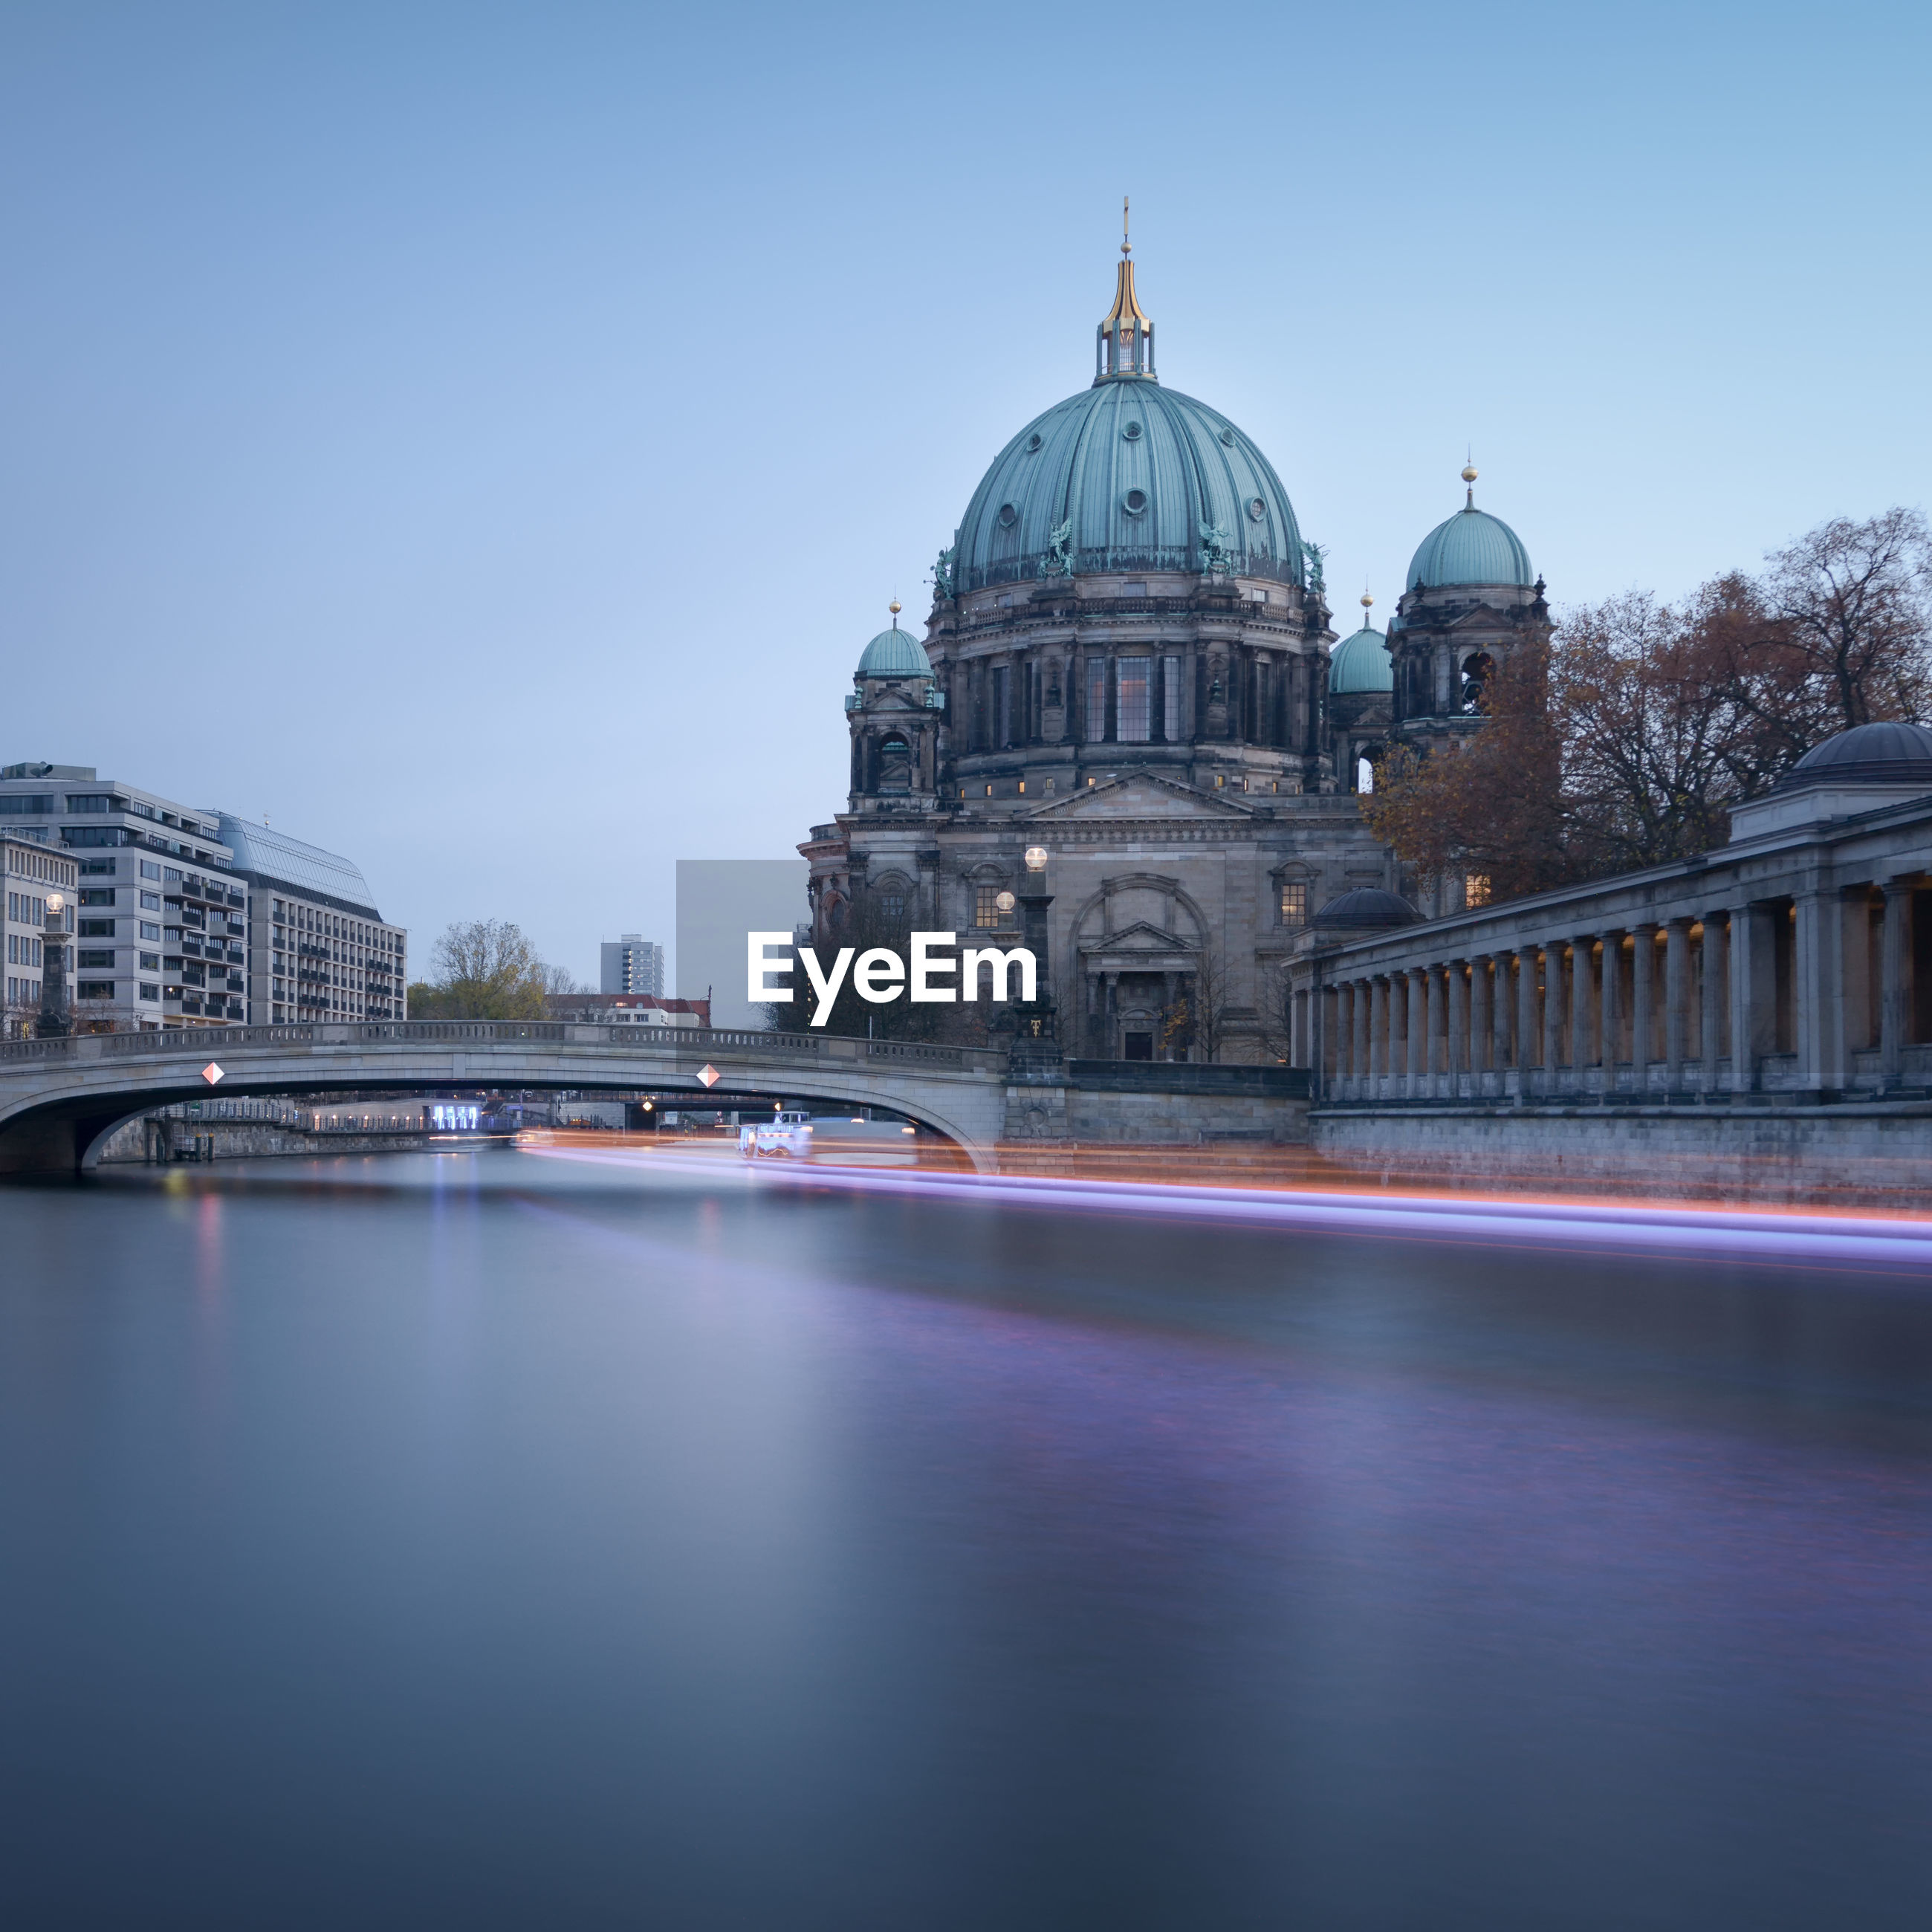 Light trail over river by berlin cathedral against clear sky at dusk